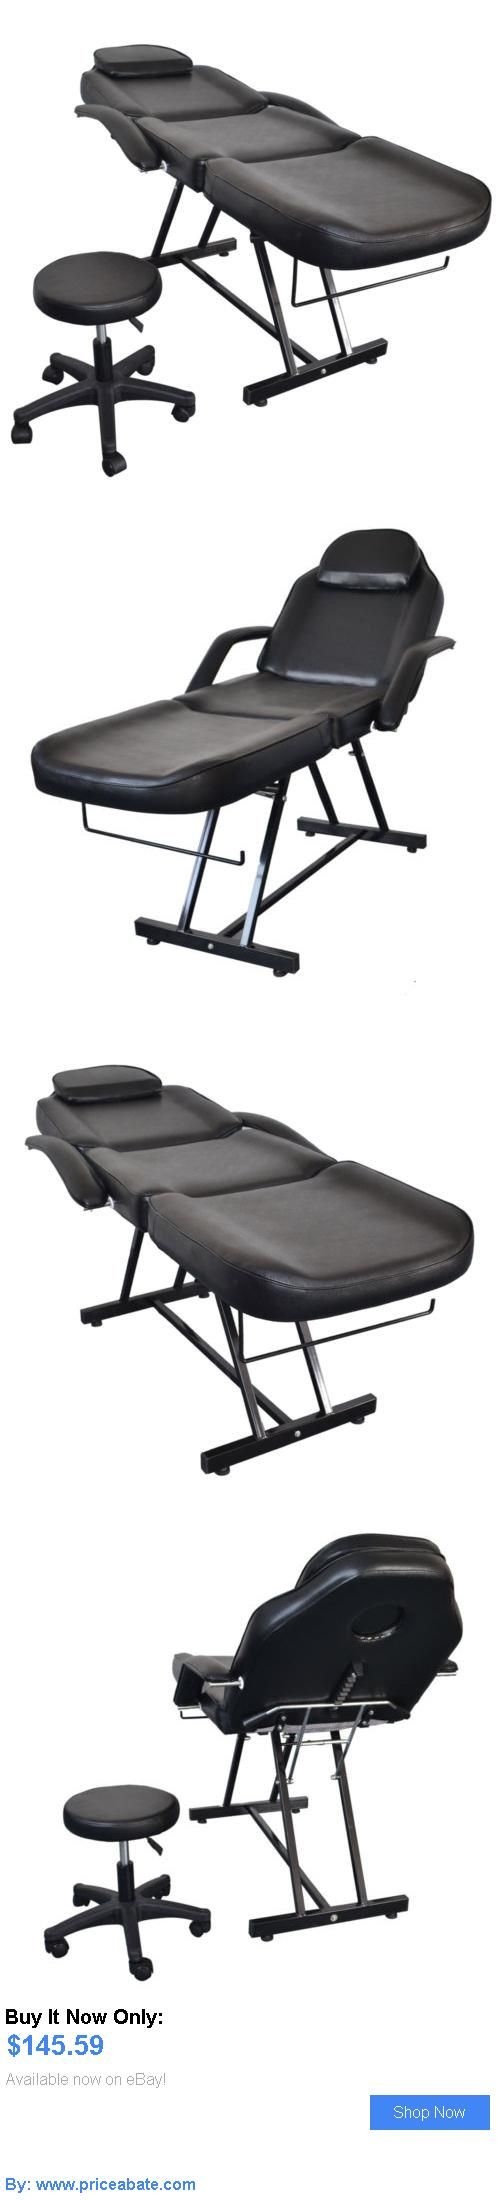 Massagers: Salon Spa Black Massage Bed Tattoo Chair Facial Adjustable Table Acupuncture BUY IT NOW ONLY: $145.59 #priceabateMassagers OR #priceabate